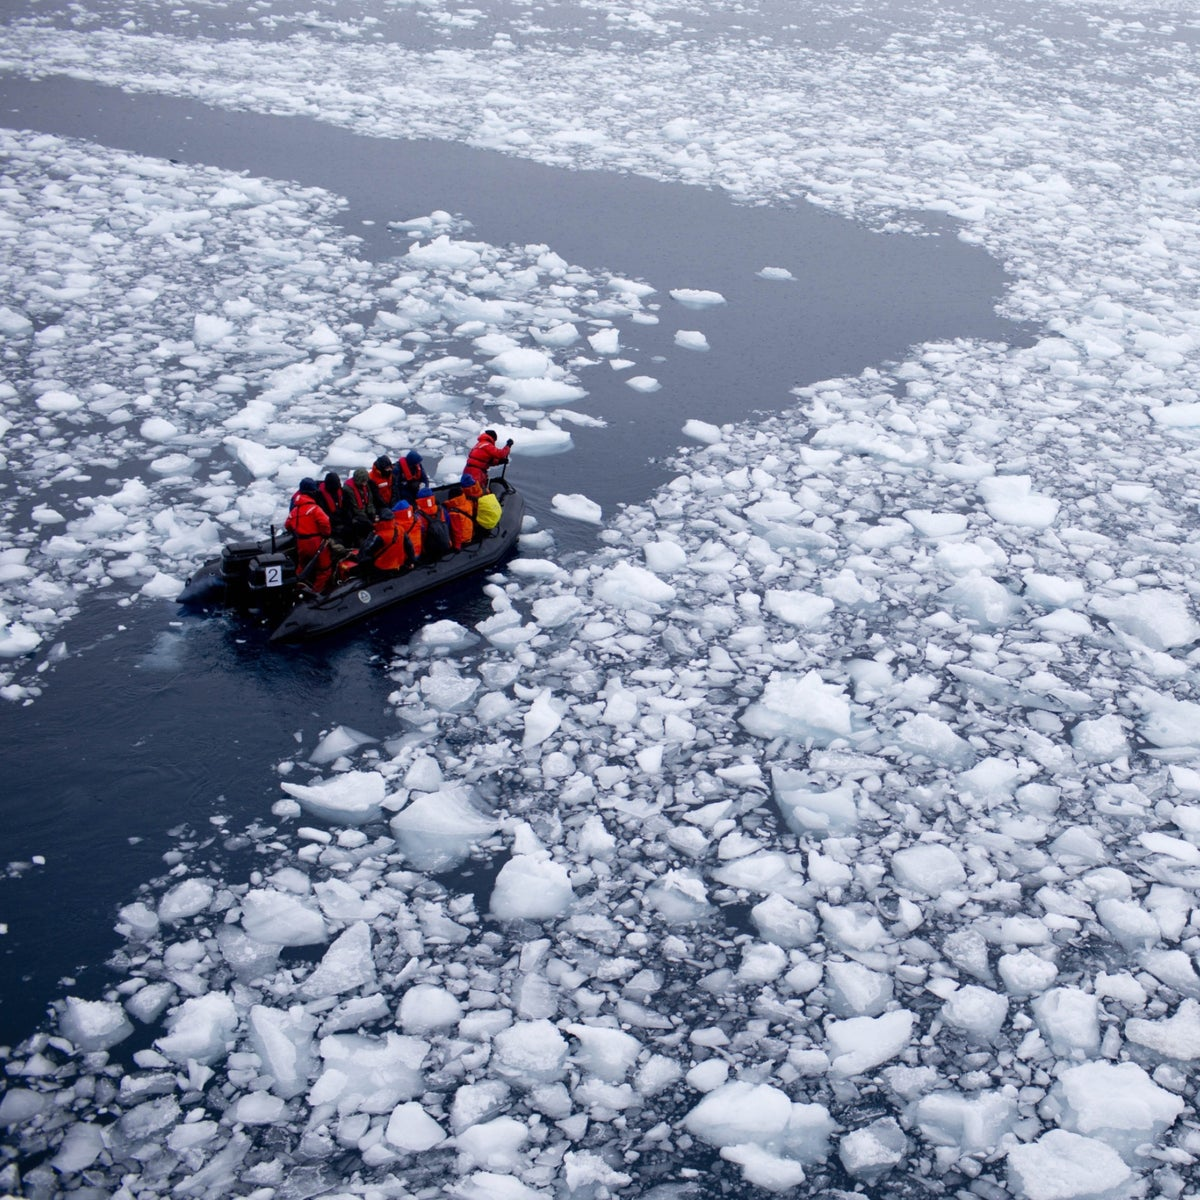 A team of scientists heads through the melting ice of Antartica as it approaches a Chilean station there, in 2015.